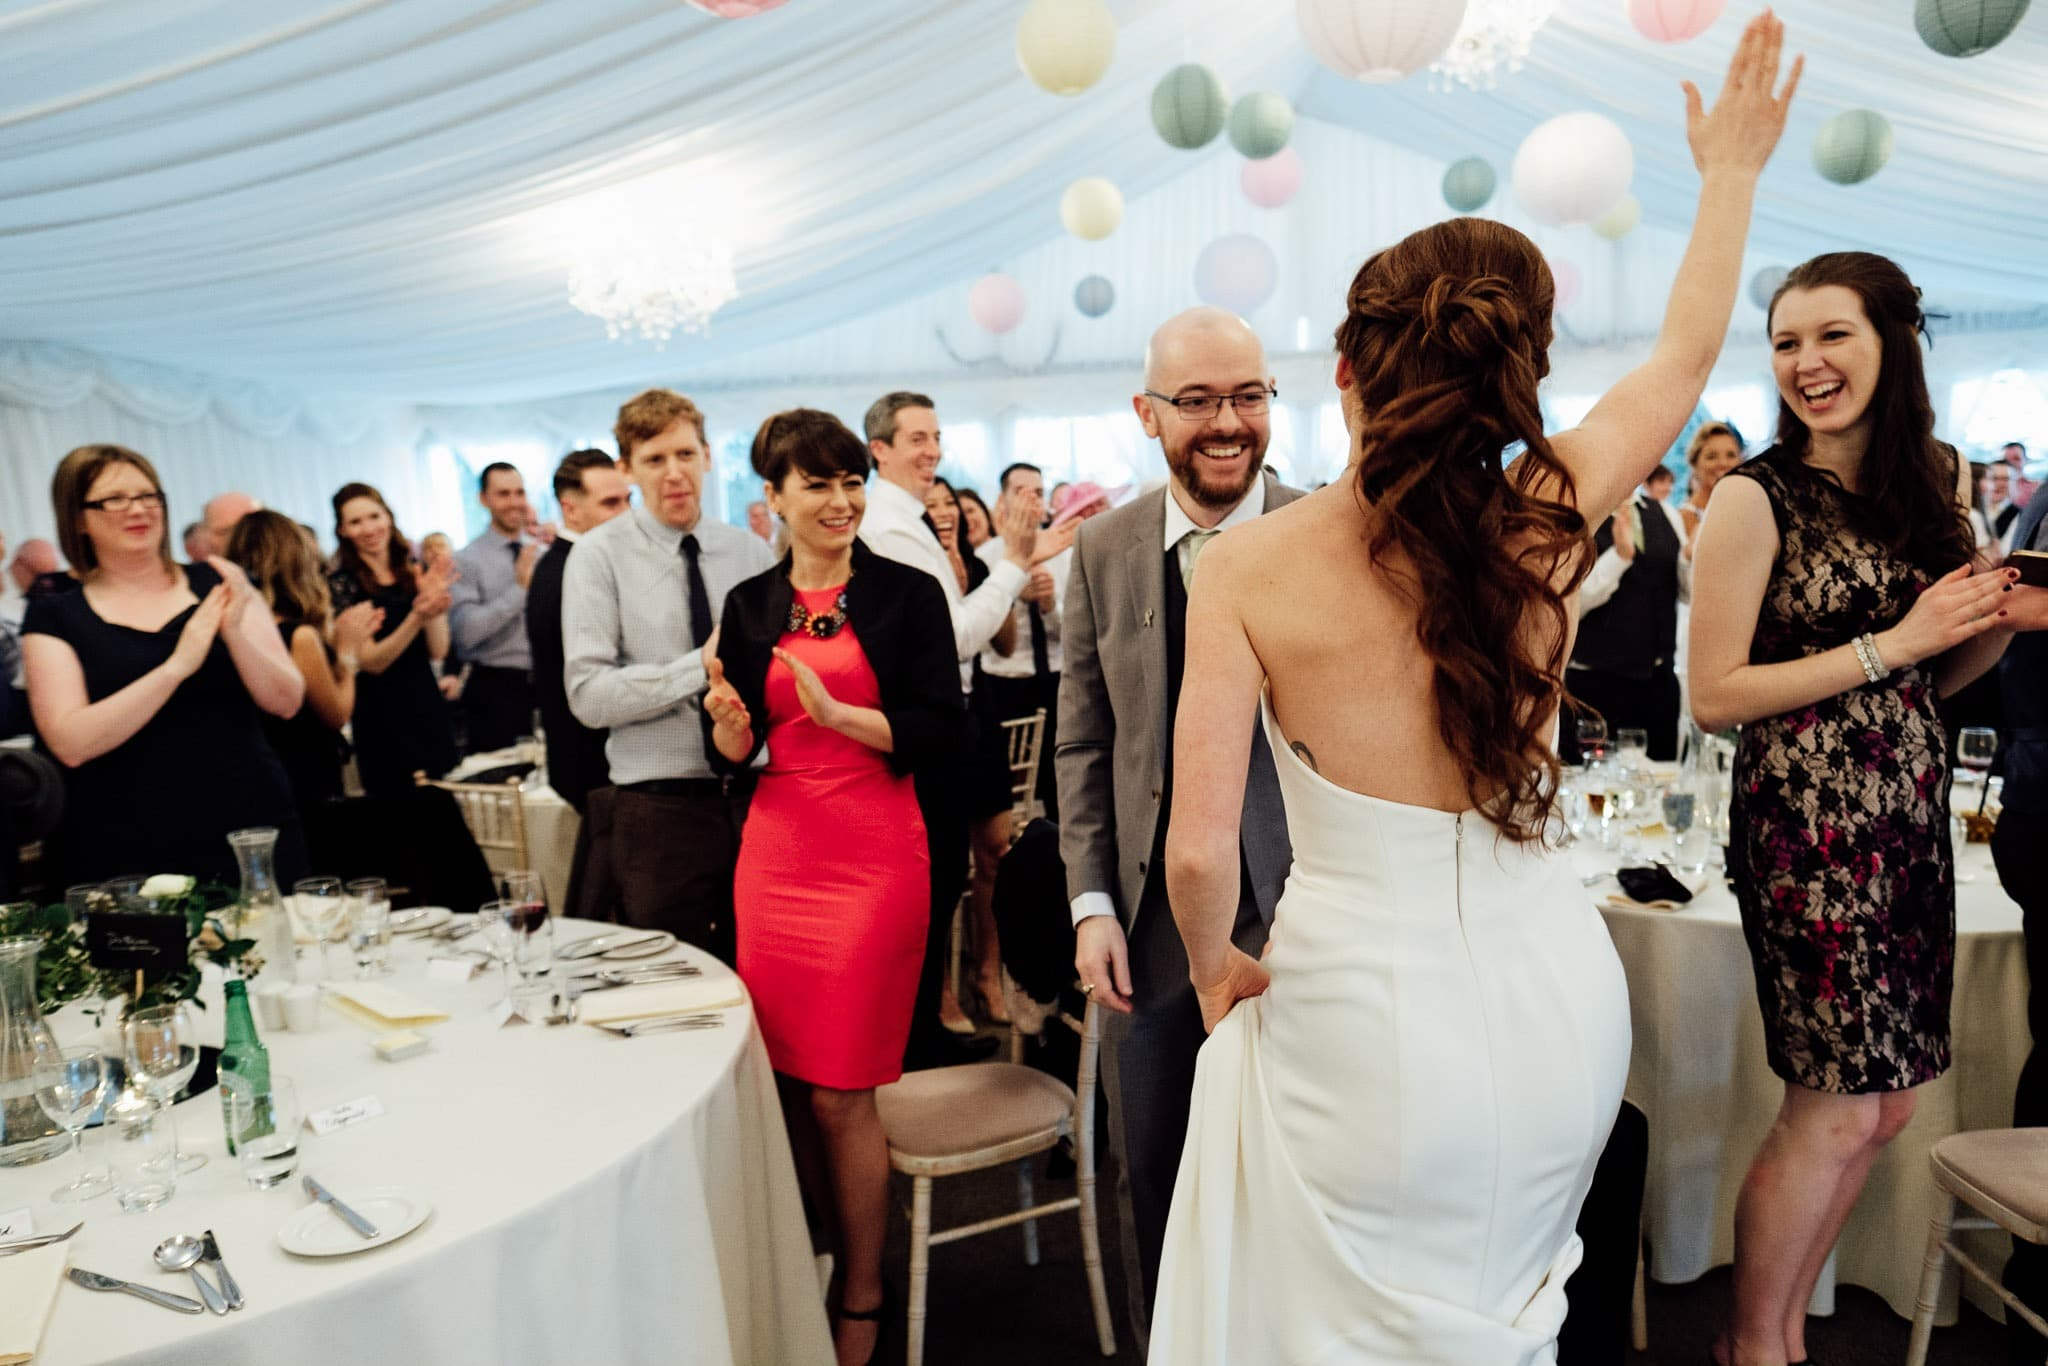 the bride and groom dancing in front of their guests